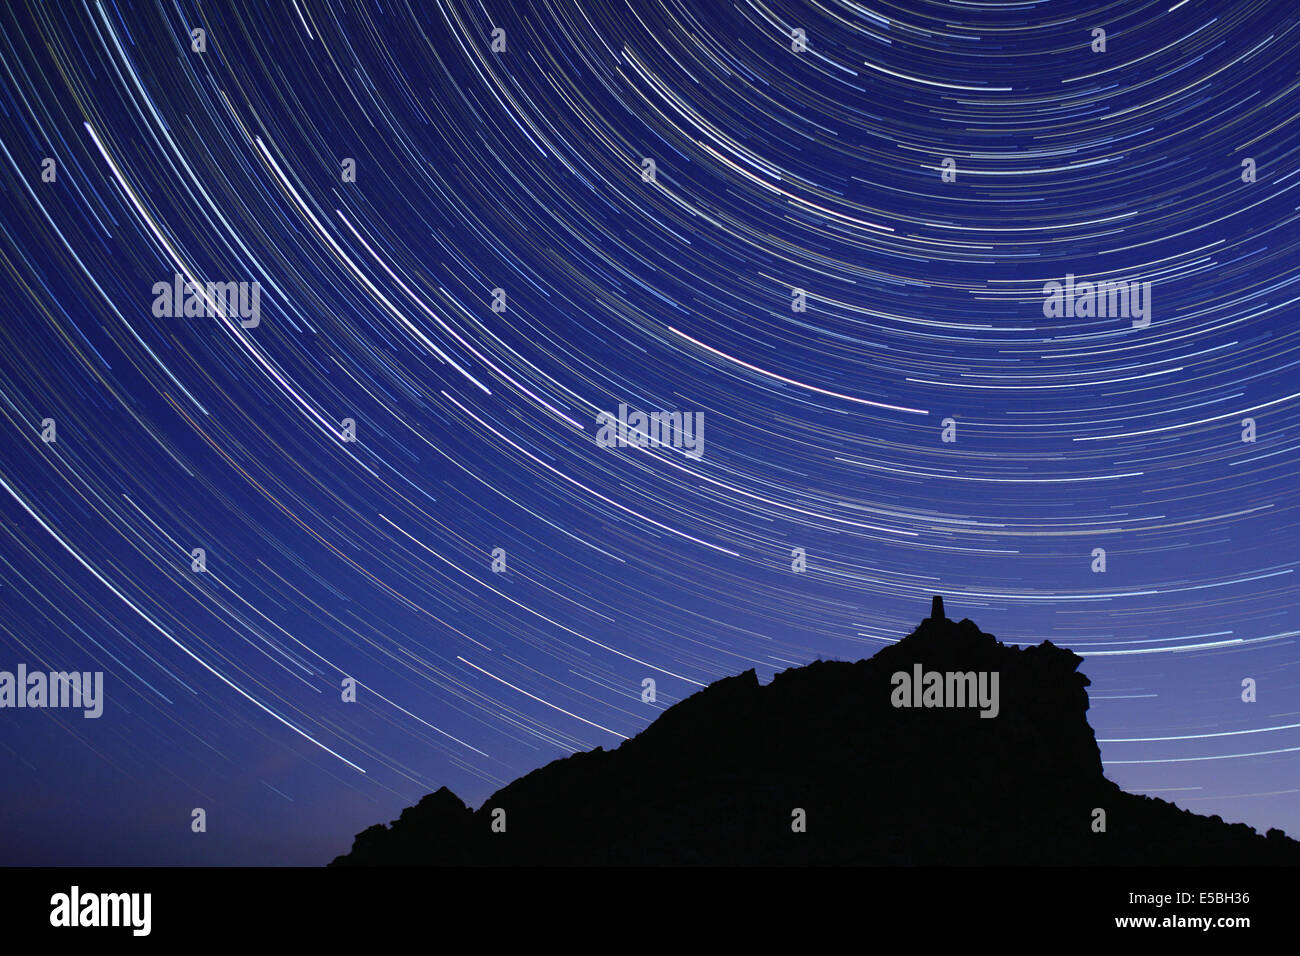 Star trails above the Stiperstones, a 536m high quartzite ridge near Shrewsbury in the Shropshire countryside, UK. - Stock Image